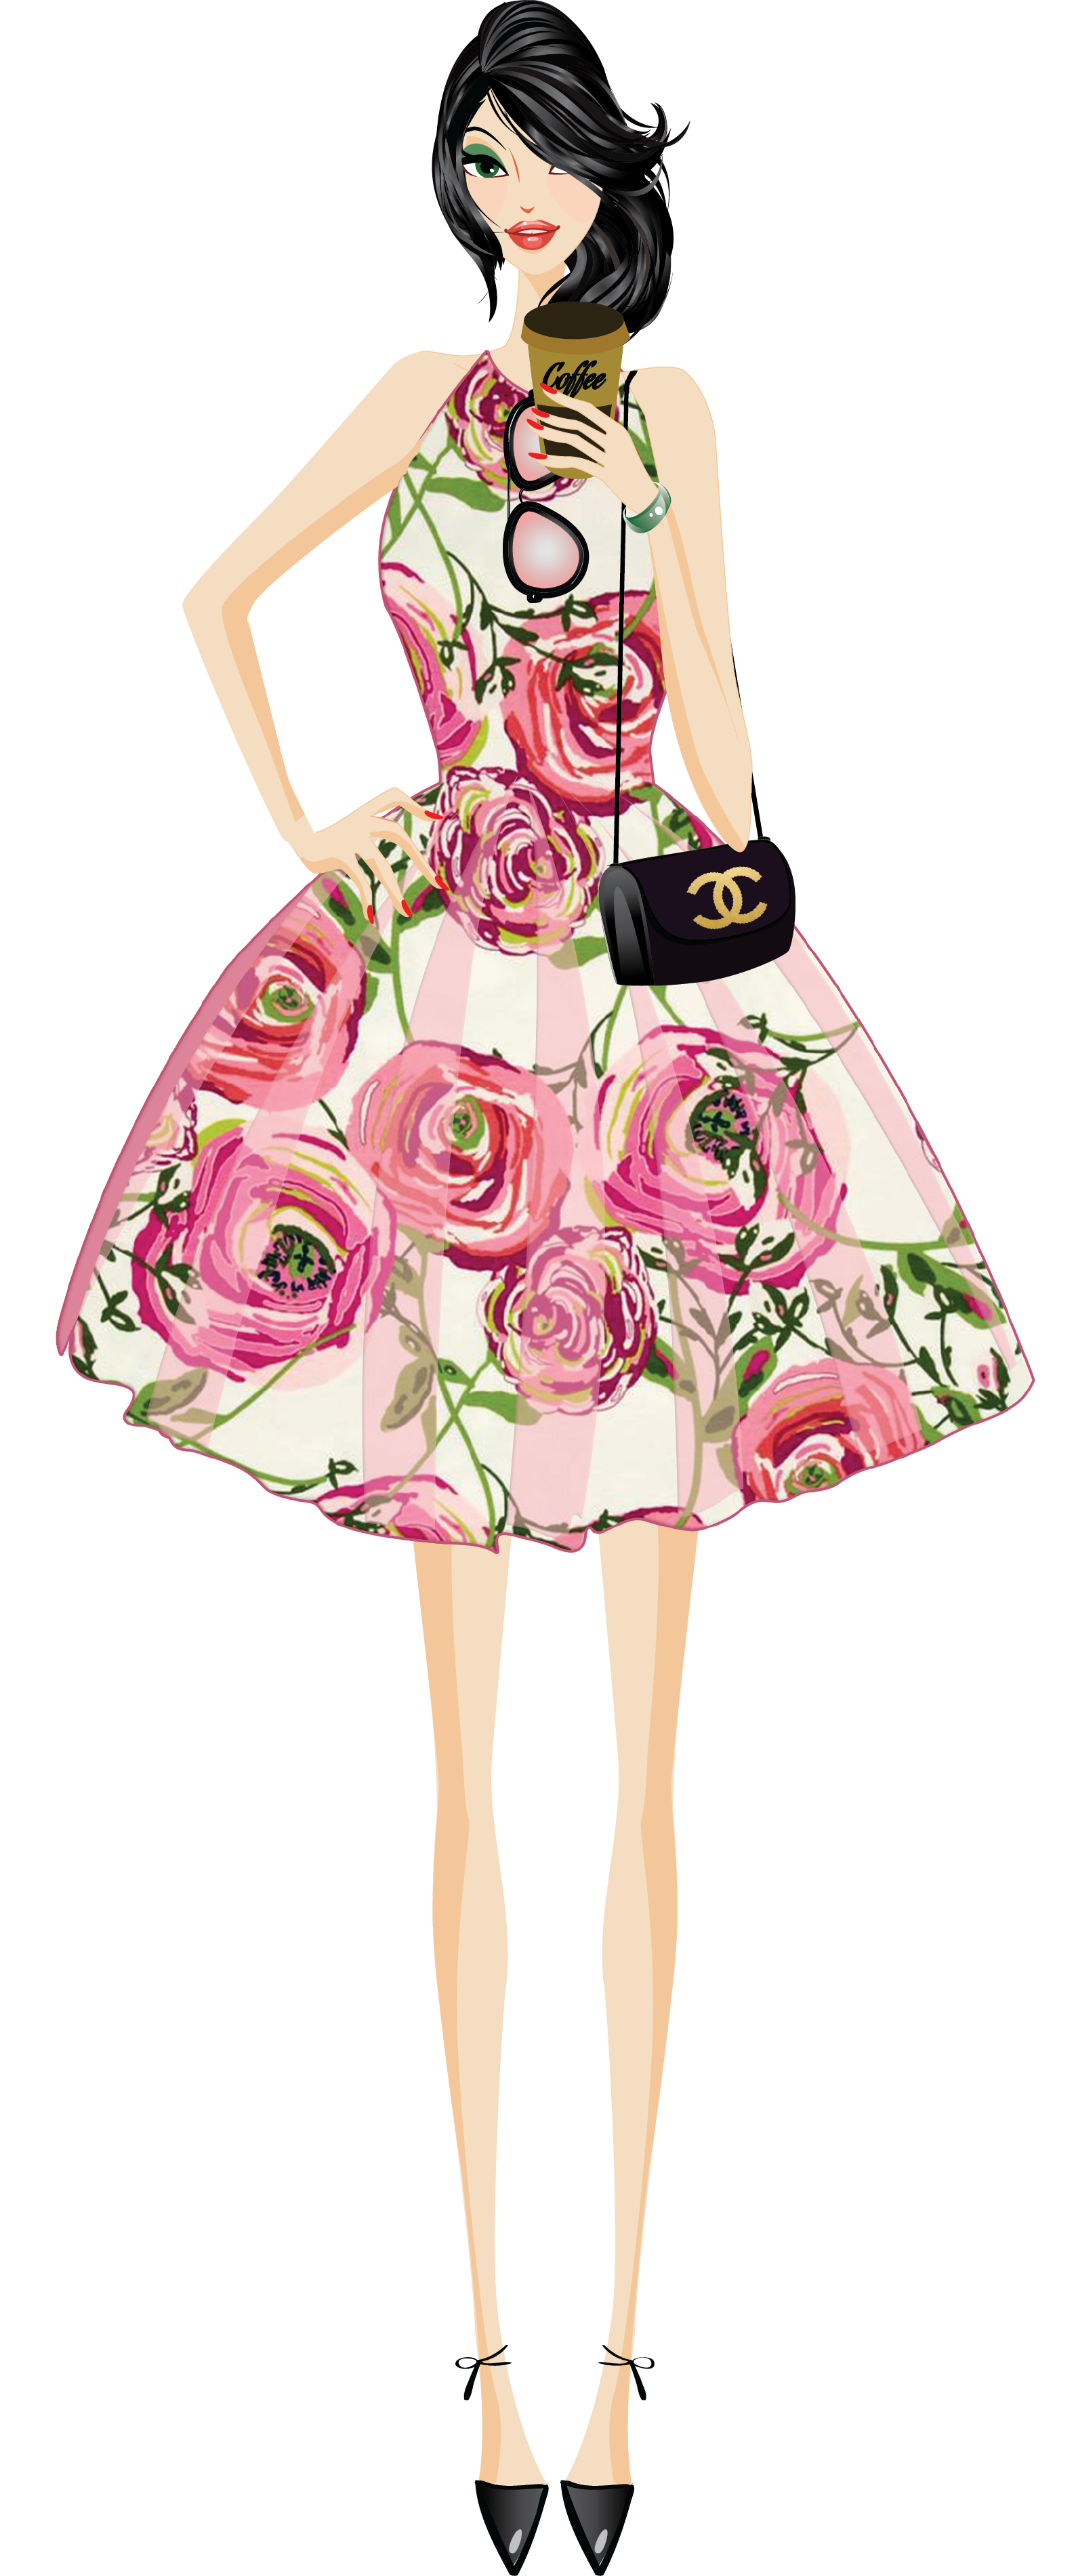 Fashion girl clip art. Planner clipart dinner